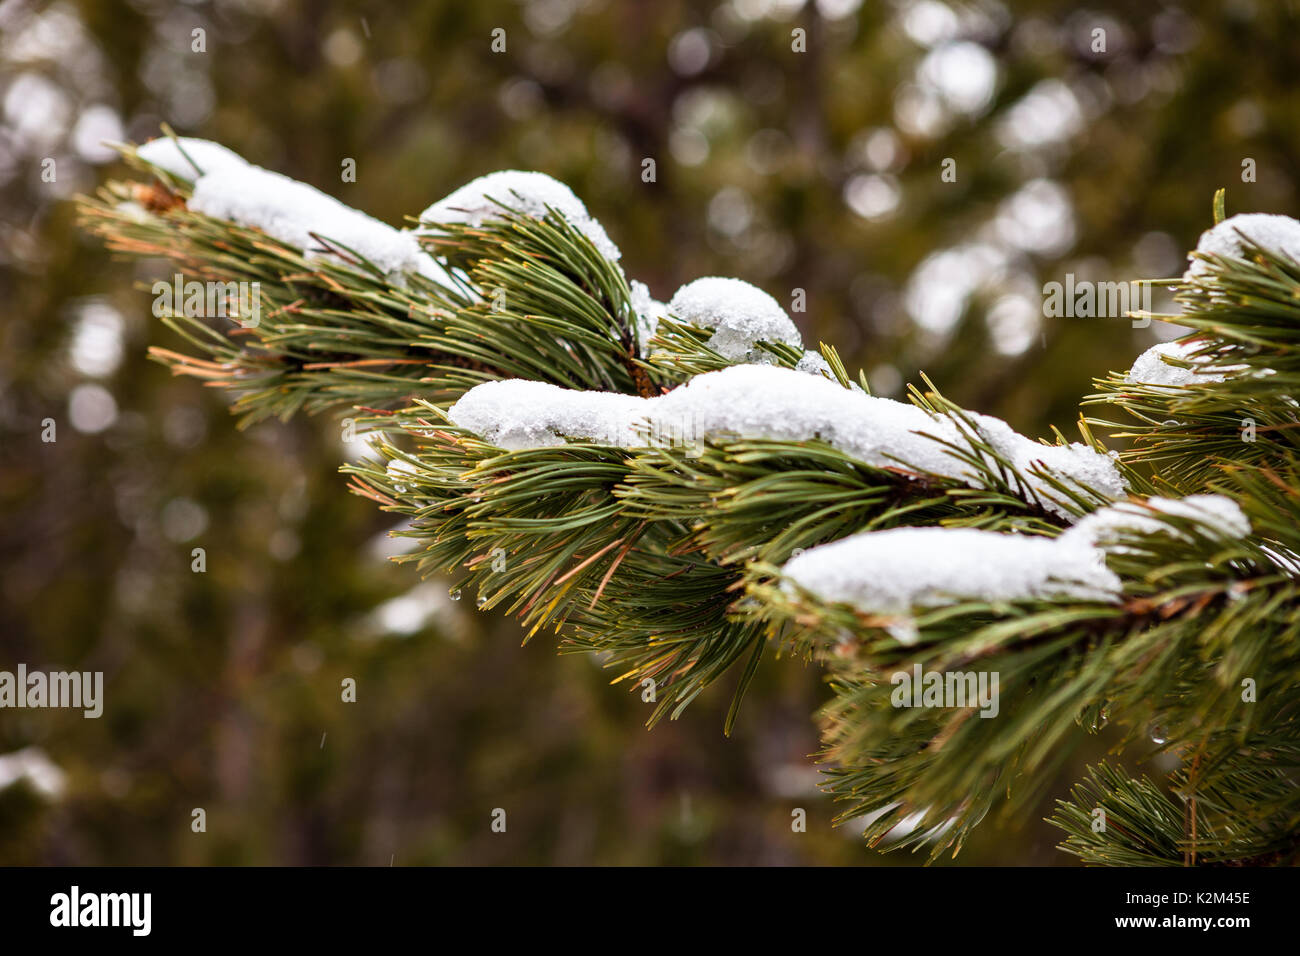 Detail of pine tree with snow - Stock Image